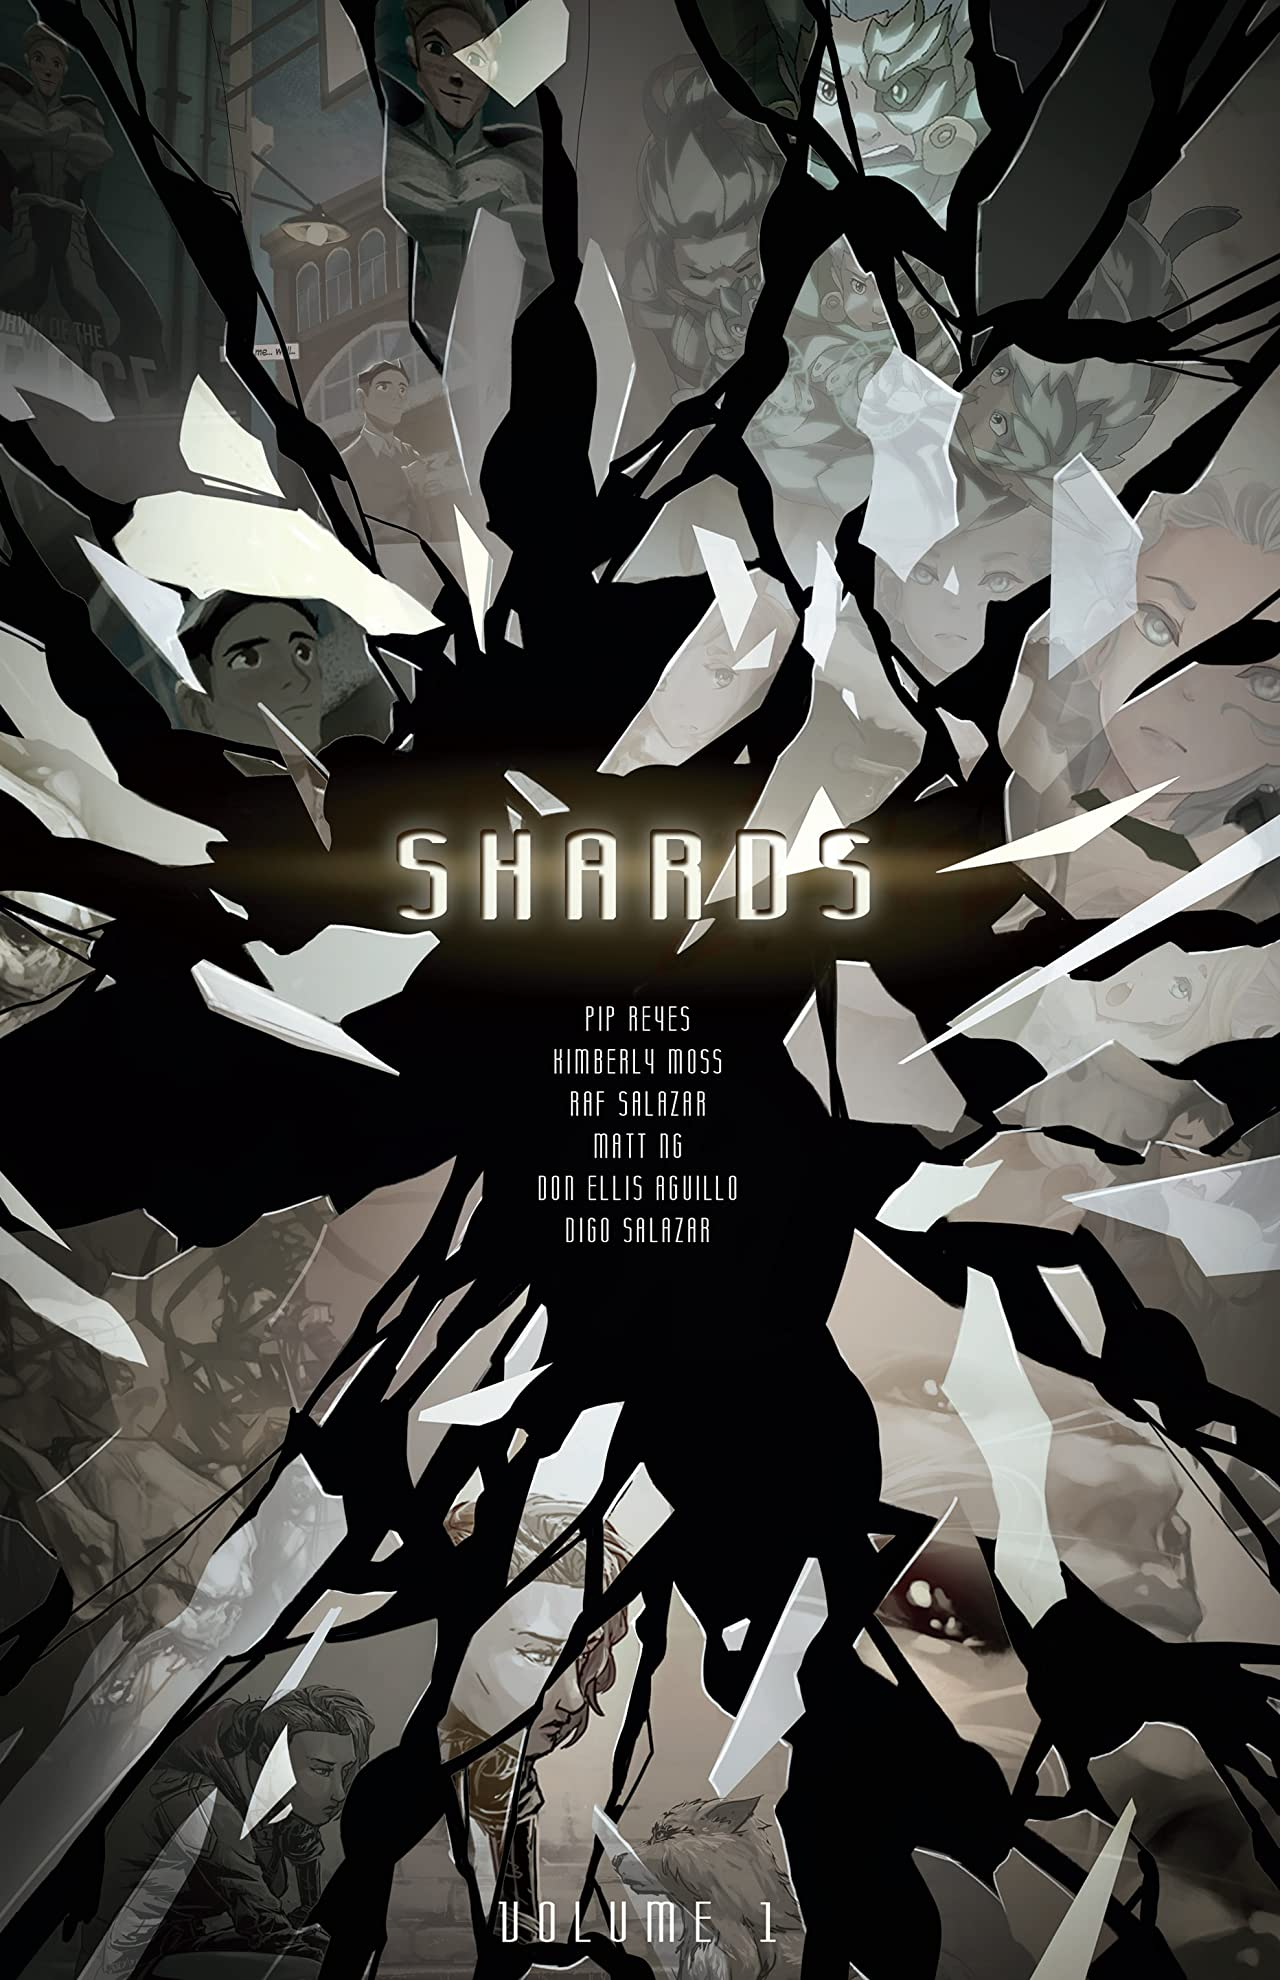 Shards Vol. 1